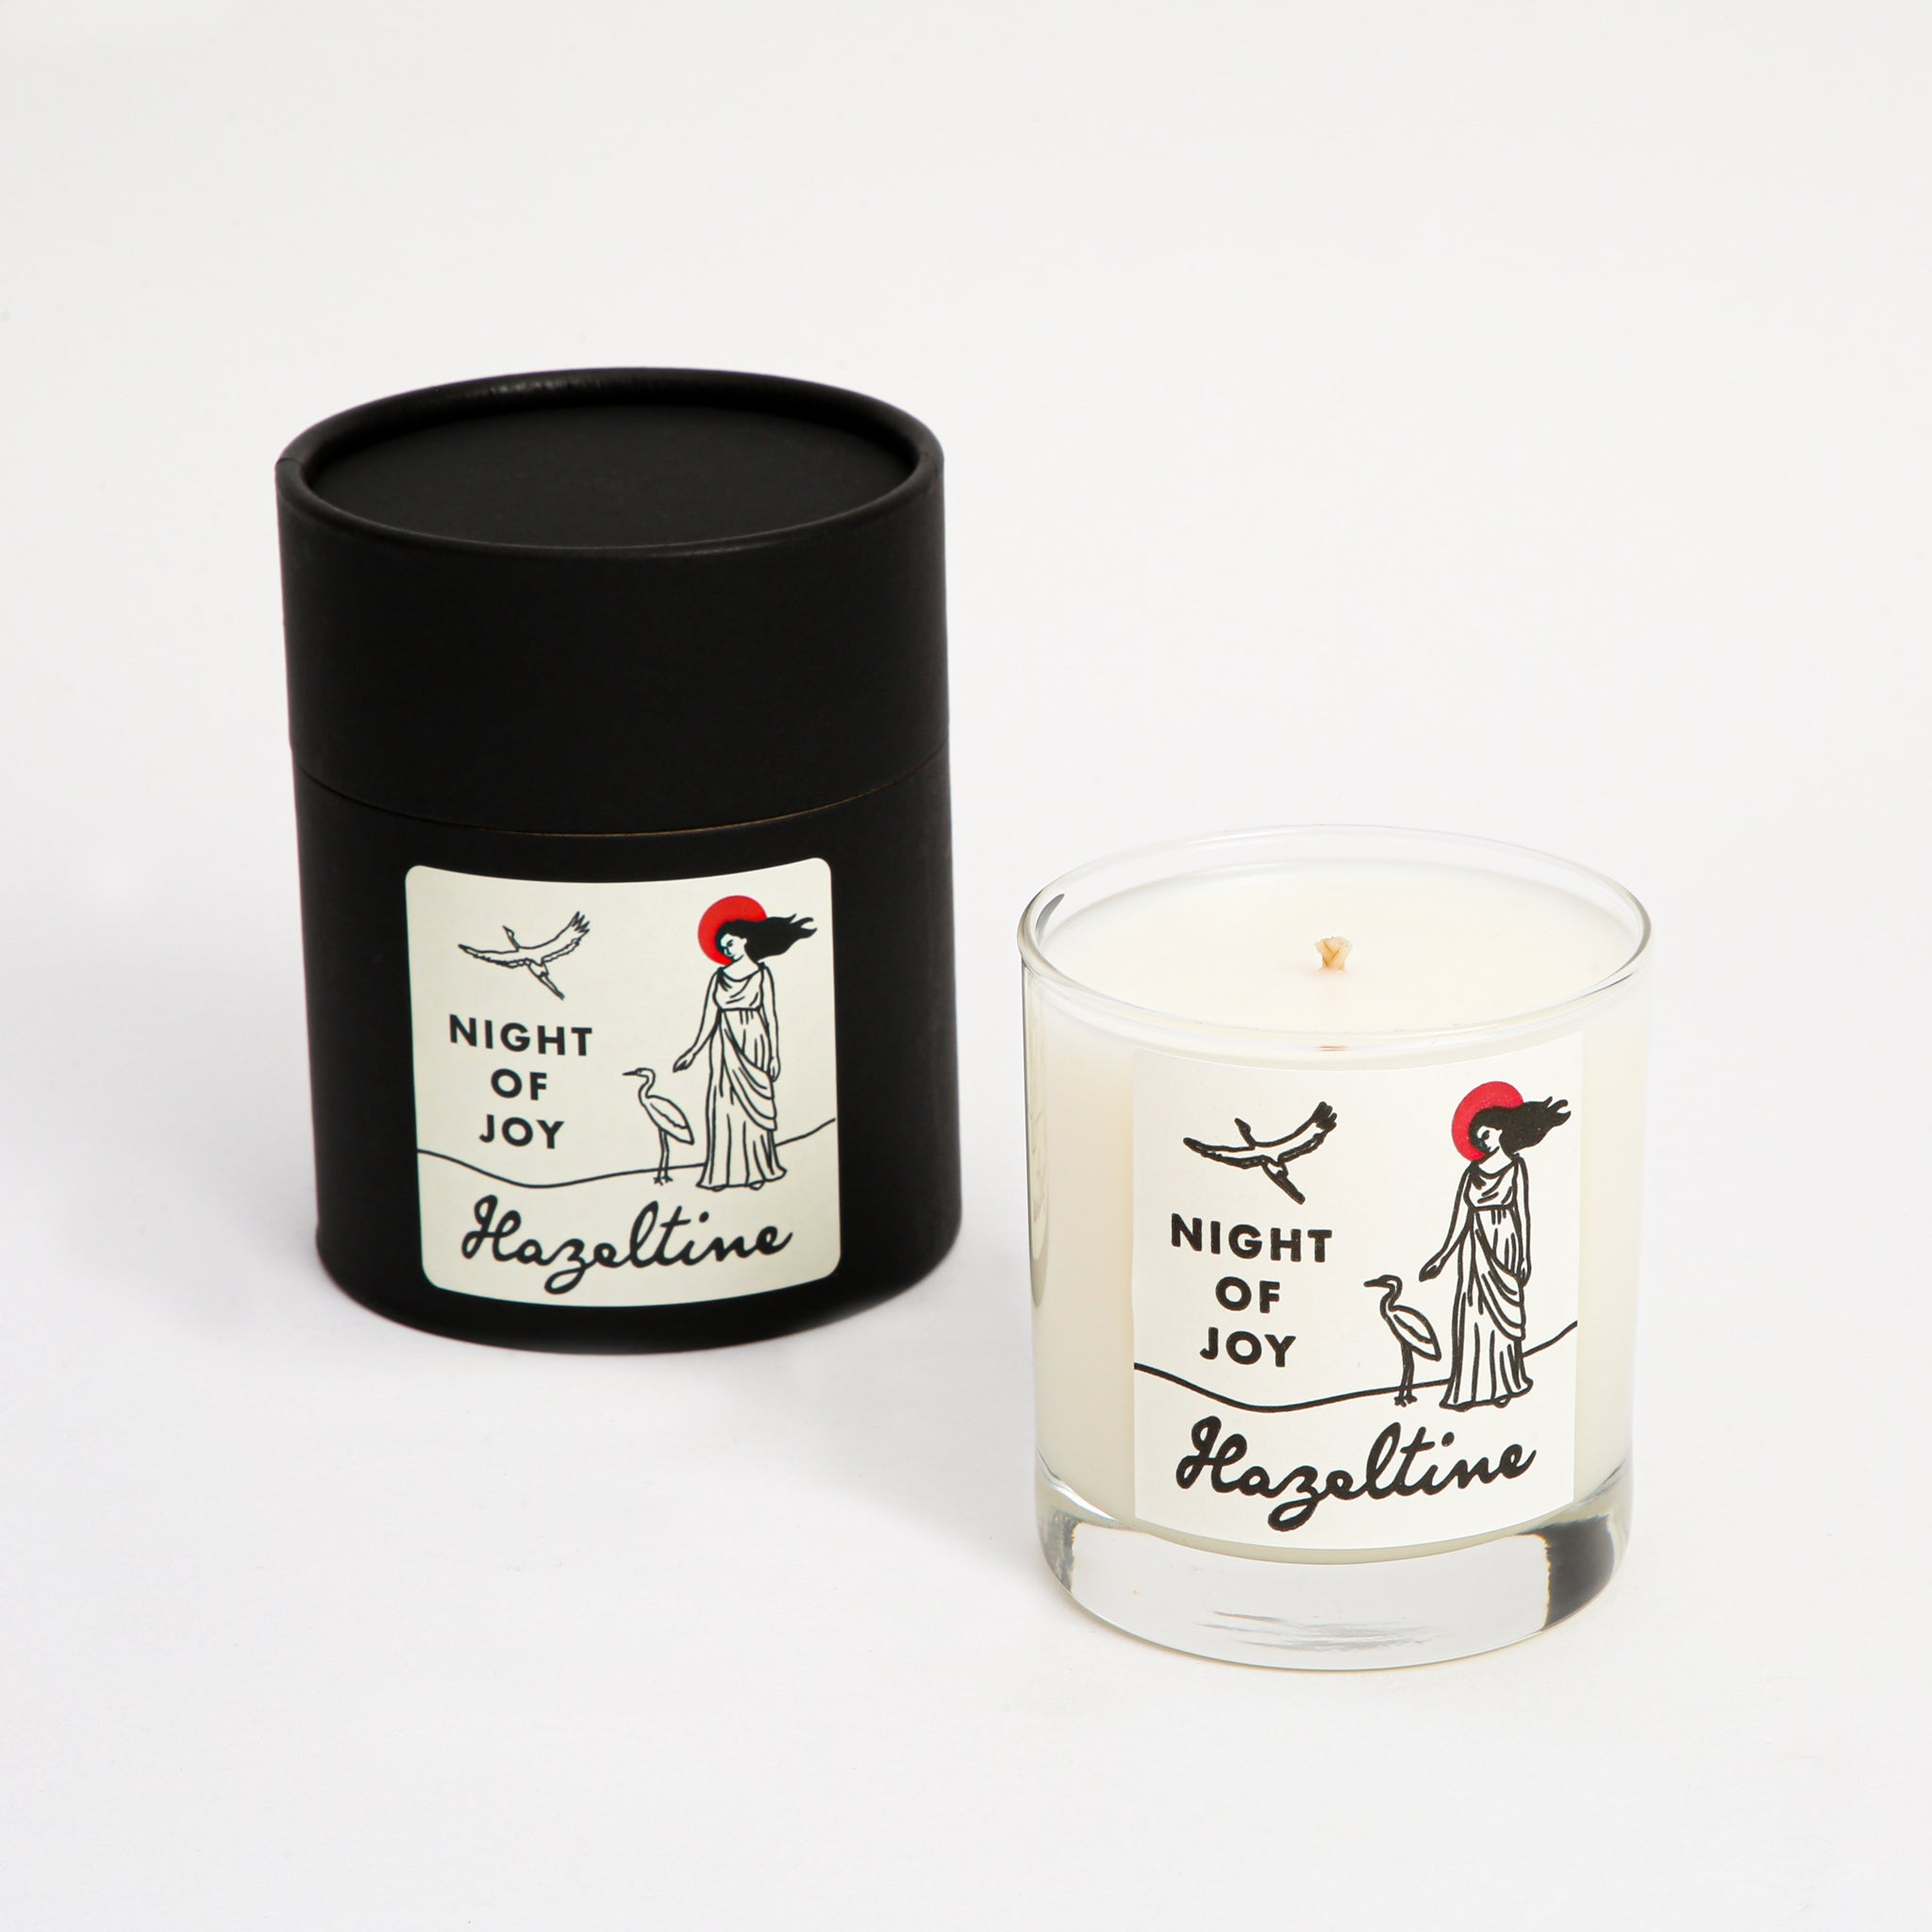 Night of Joy Scented Candle with Box